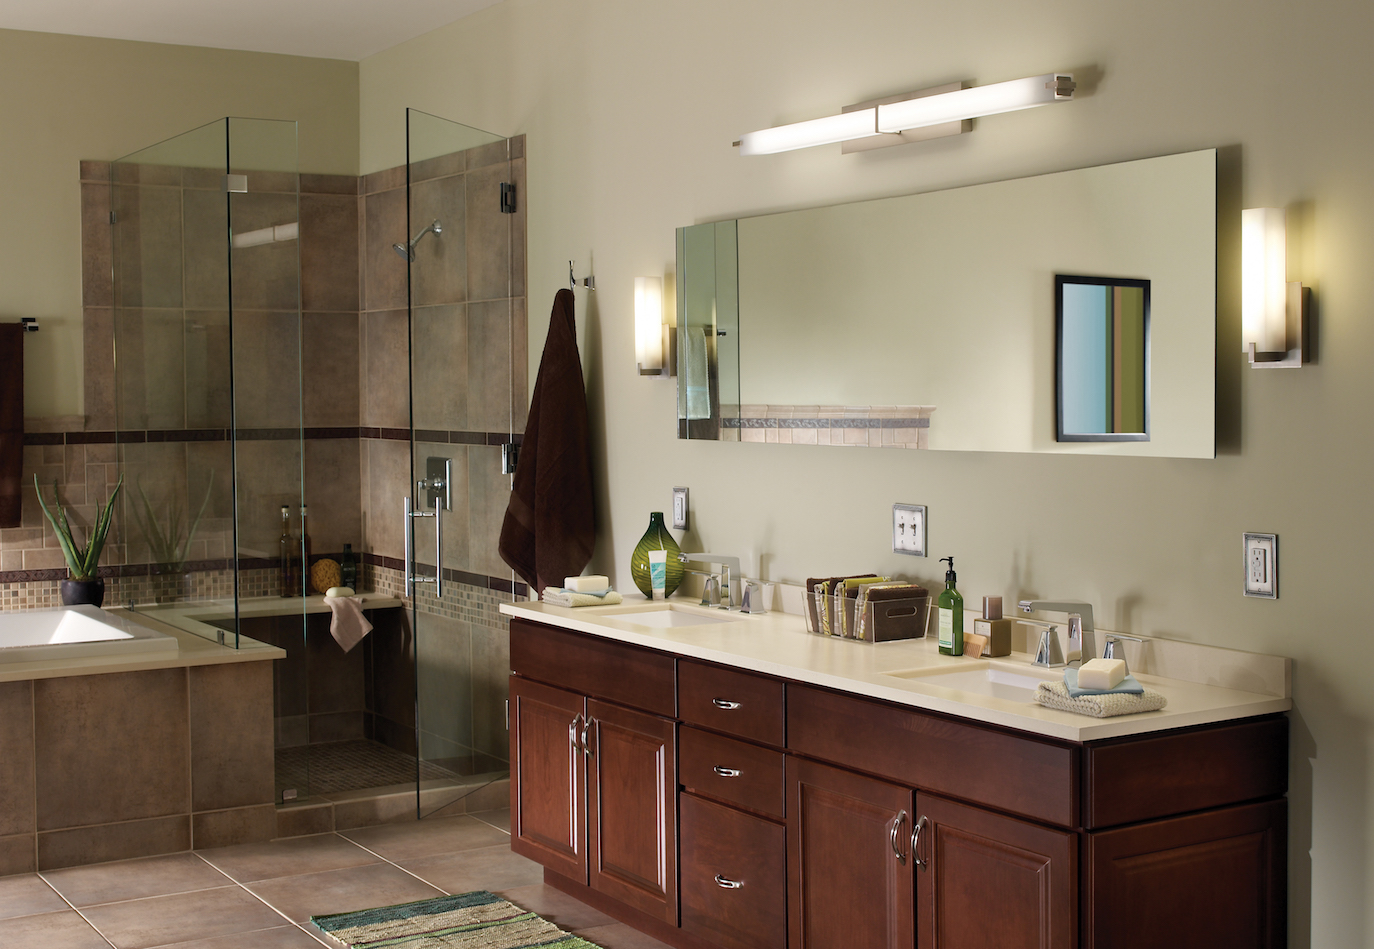 Modern Bathroom Lighting Buying Guide |YLighting Part 36